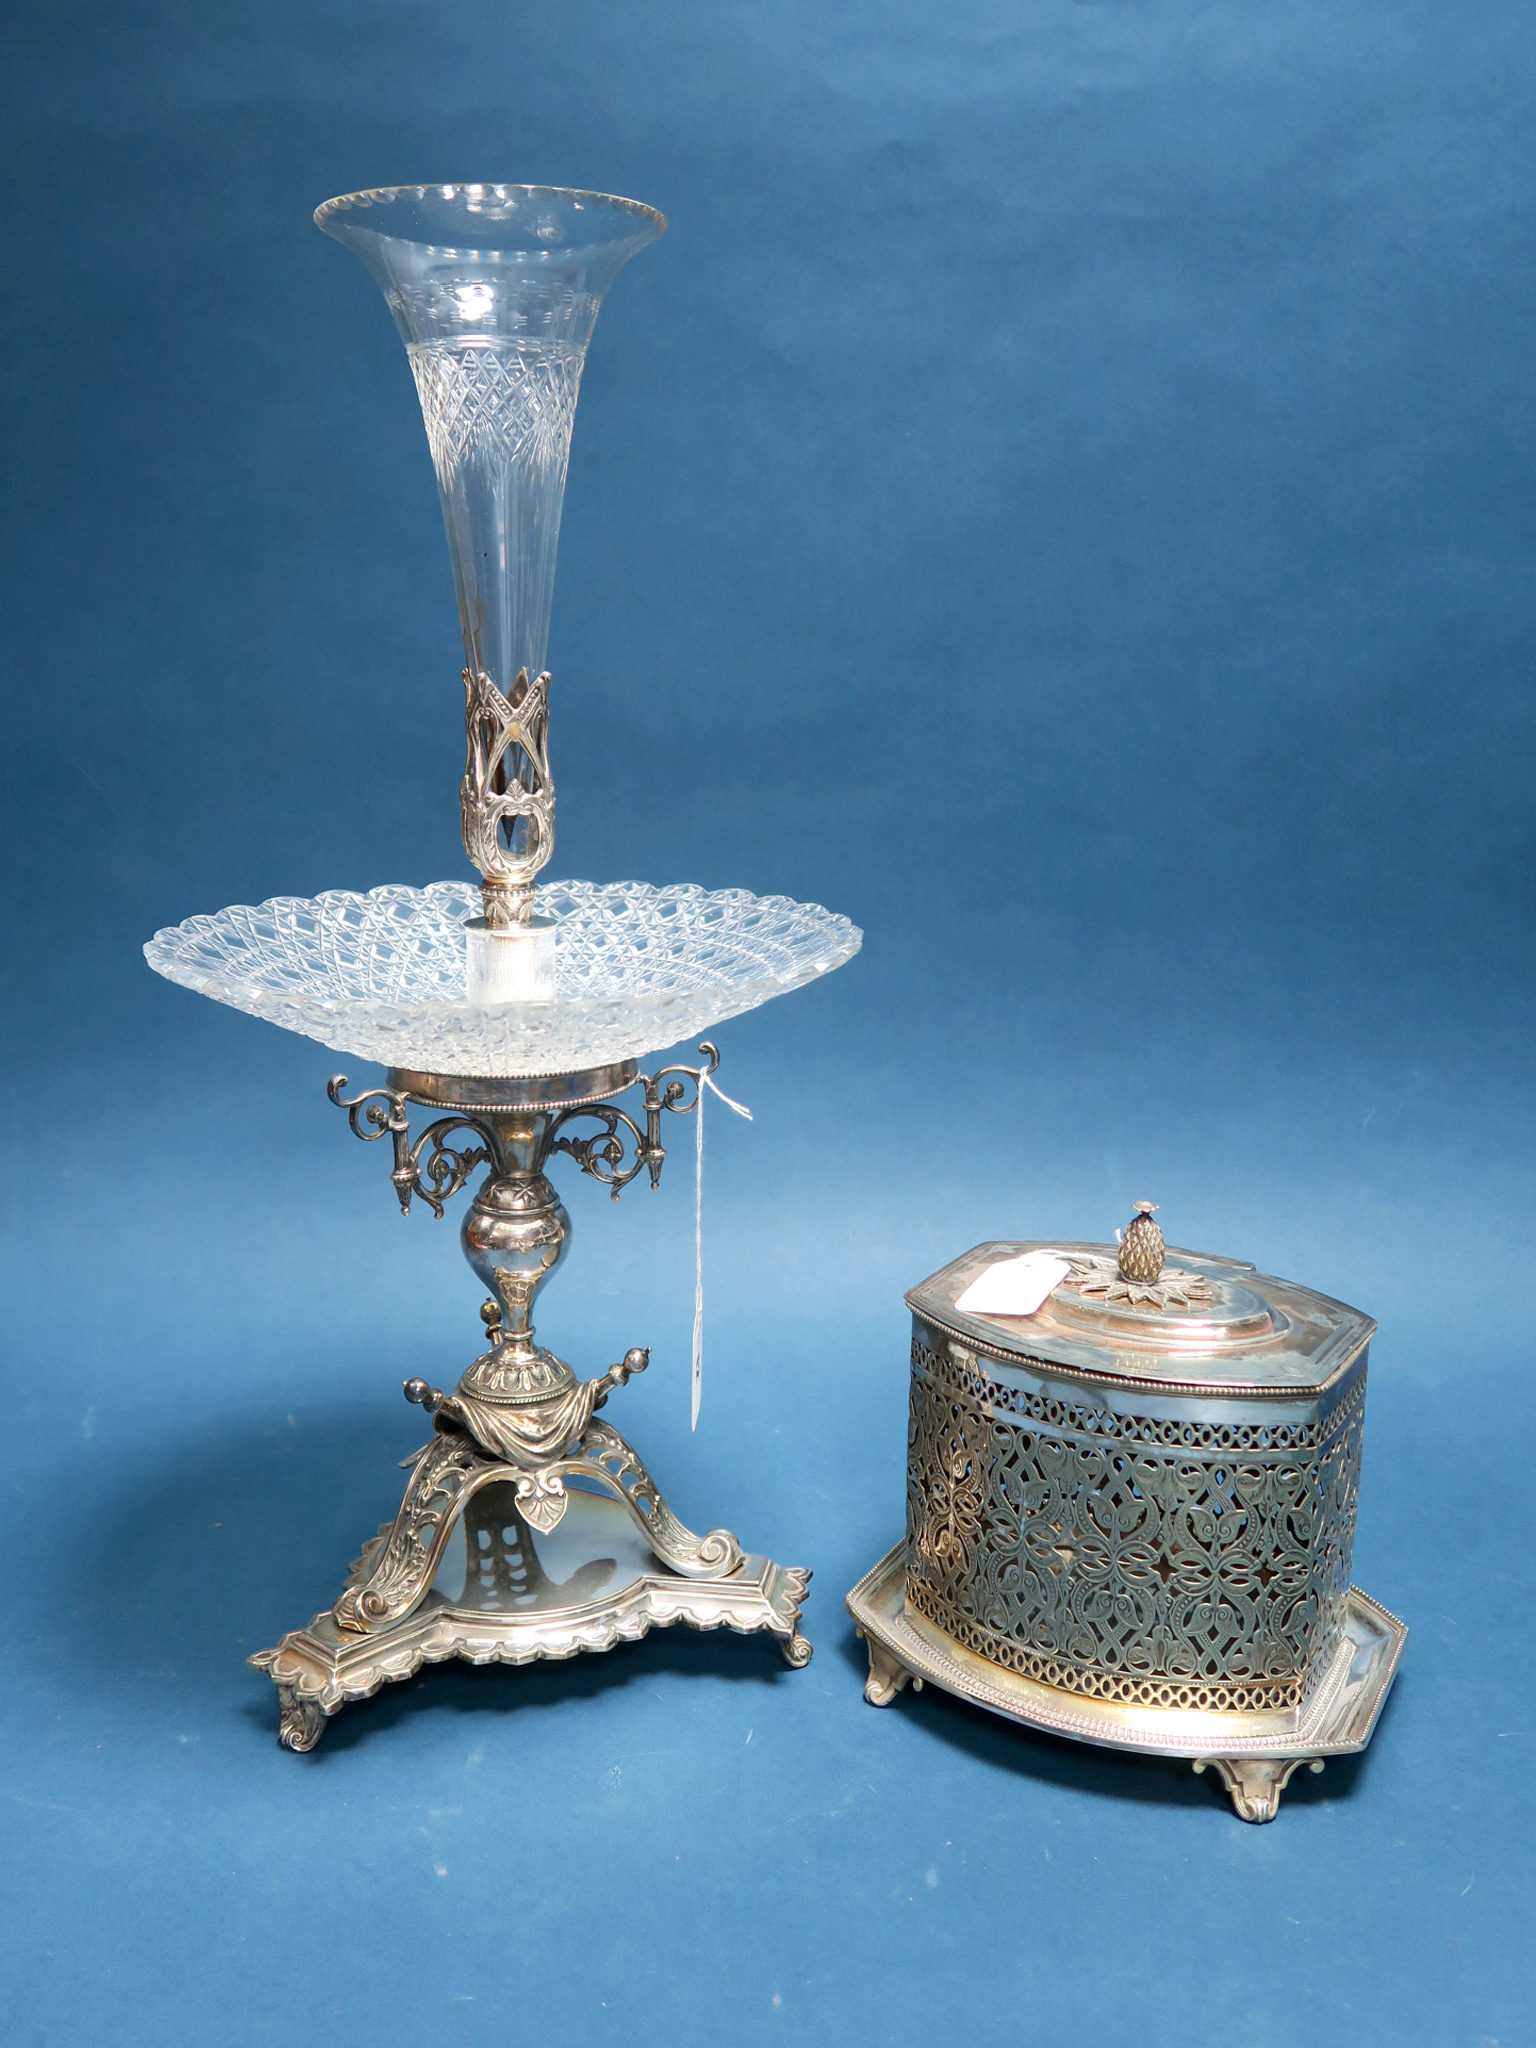 Lot 12 - An Atkin Bros Plated Table Epergne Centrepiece, with cut glass dish and single central glass